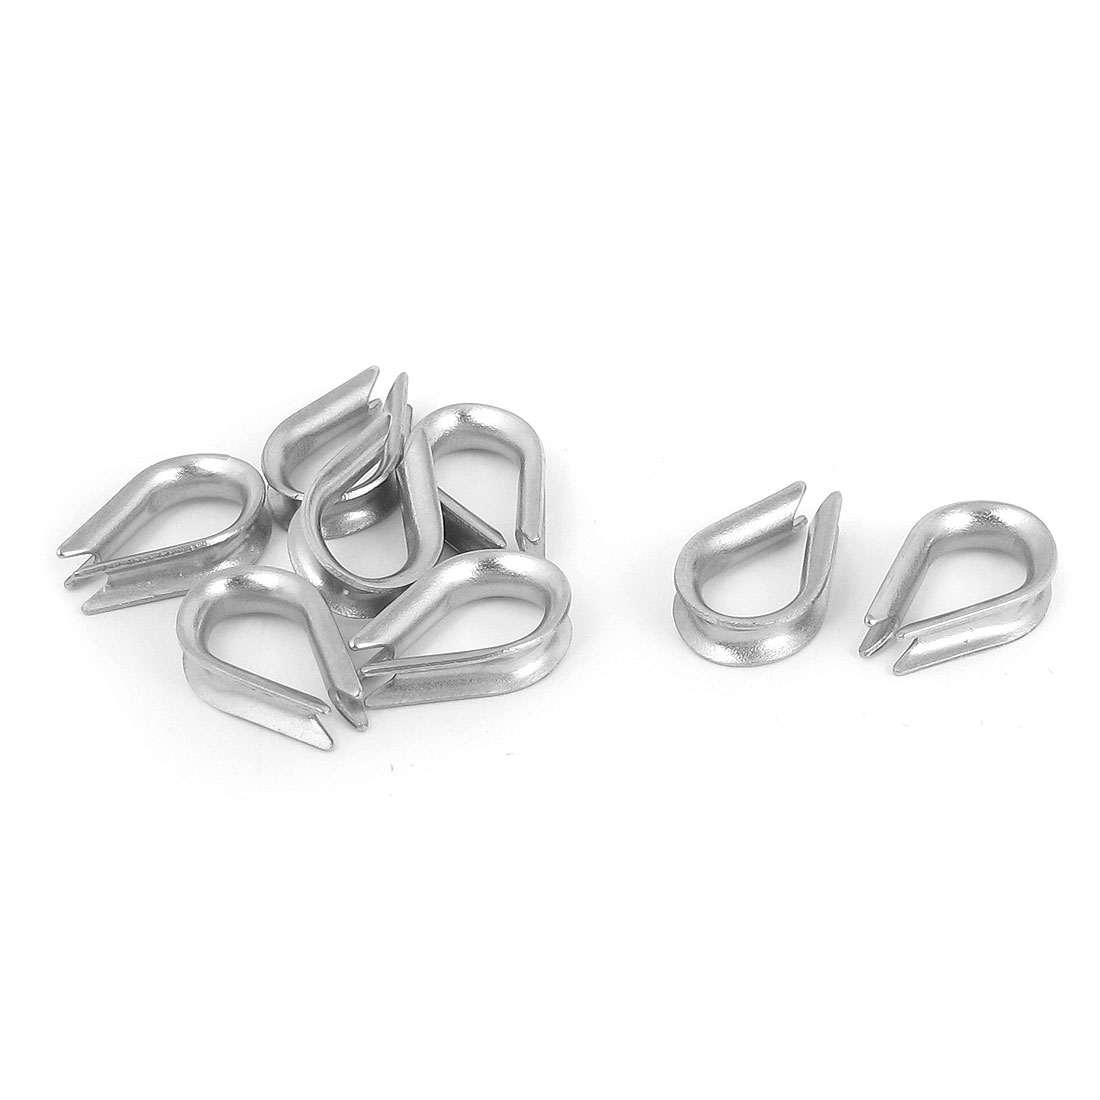 Stainless Steel 2mm Wire Rope Cable Commercial Thimbles Lifting Gear Silver Tone 10pcs